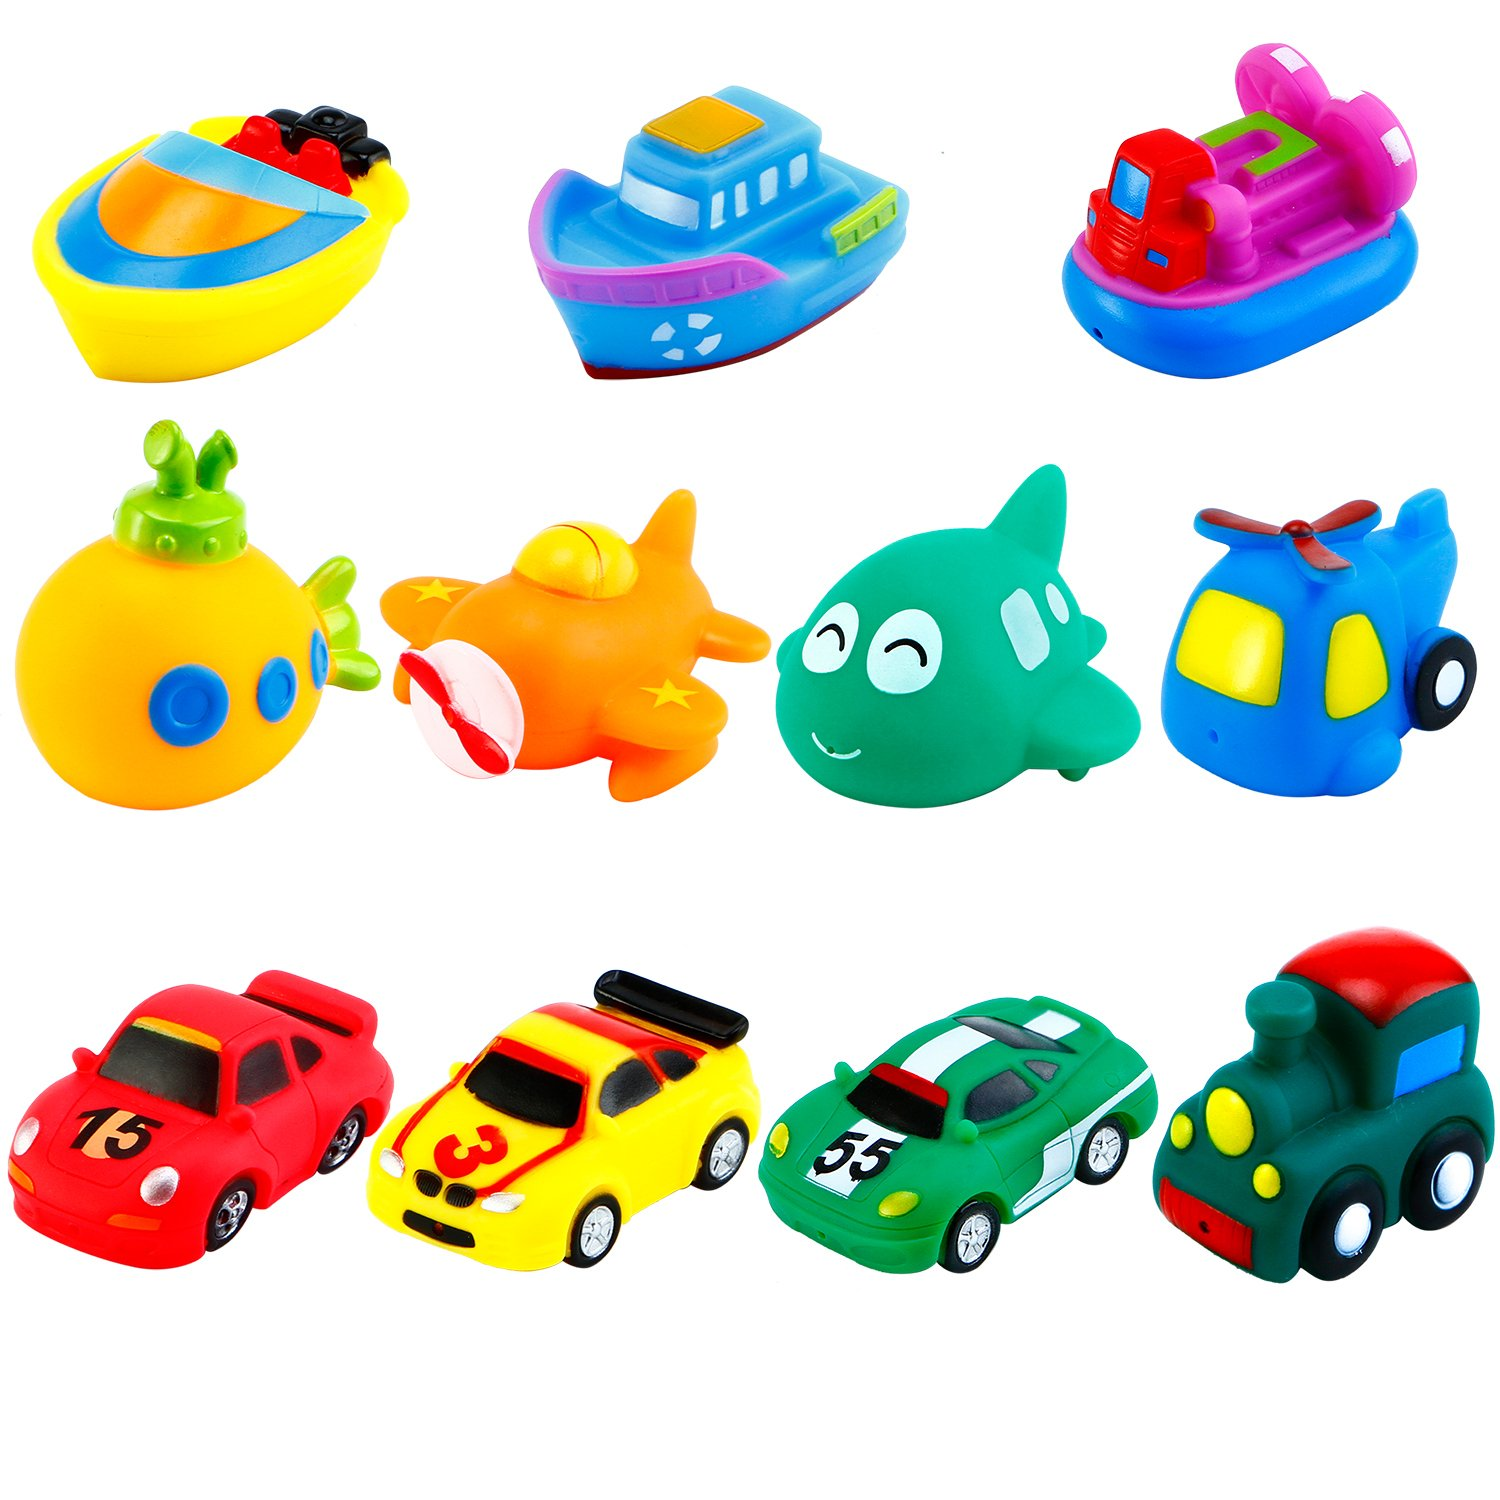 Keriber 11 Pack Floating Bath Toys Rubber Floating Boat Vehicle Aircraft Bath Squirt Toys for Baby or Kids (11 Style)